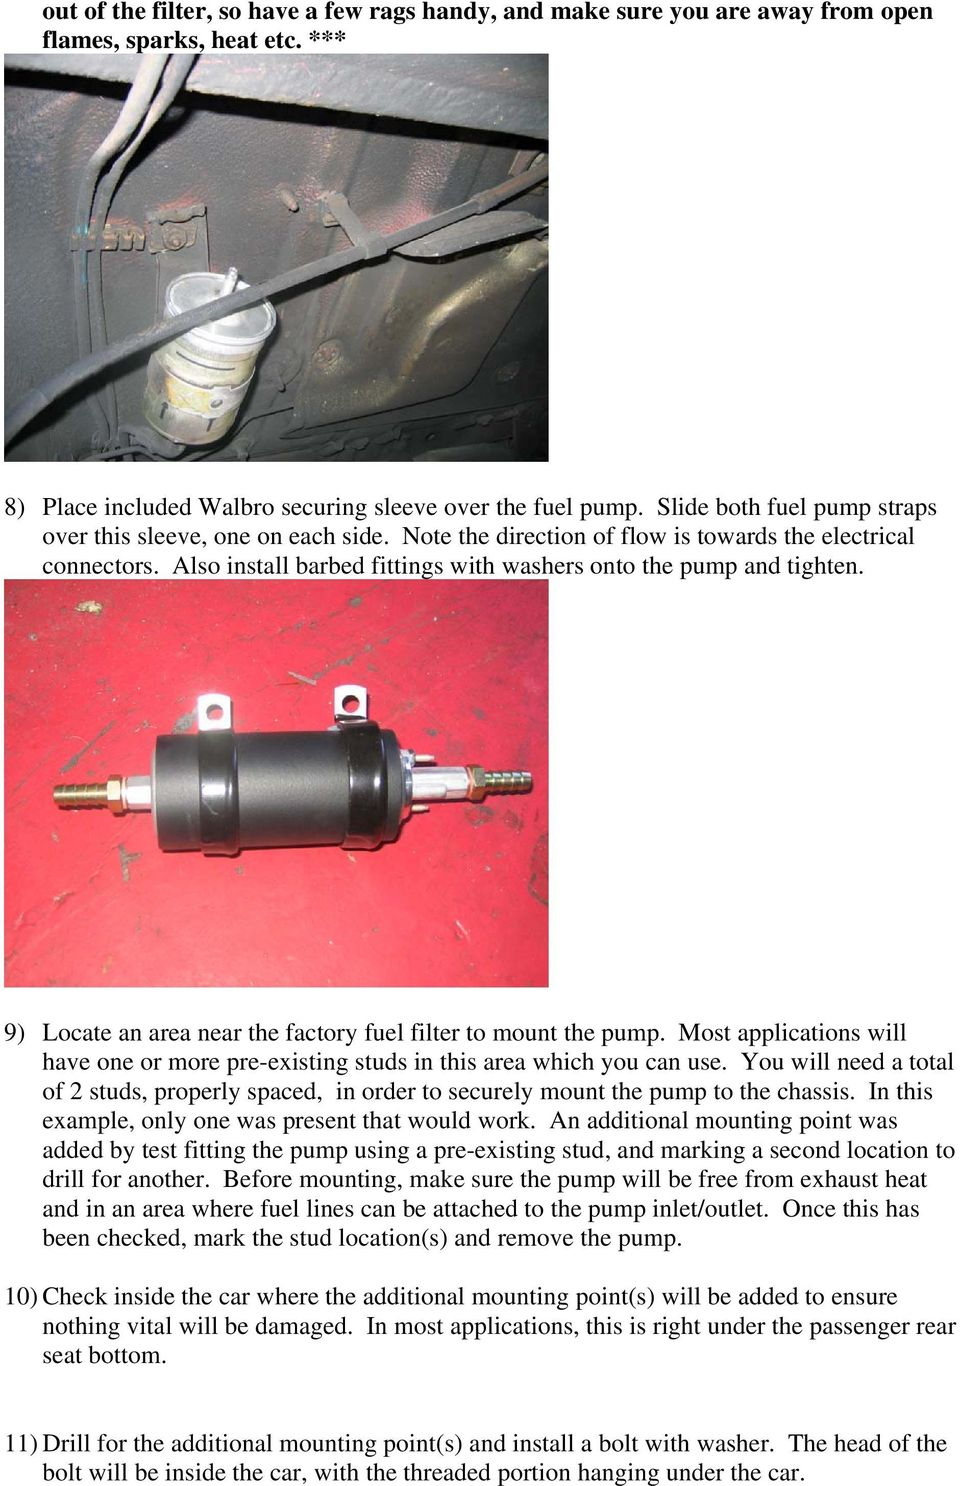 Walbro 255lph Inline Fuel Pump Install Procedure Pdf 2007 Monte Carlo Filter 9 Locate An Area Near The Factory To Mount Most